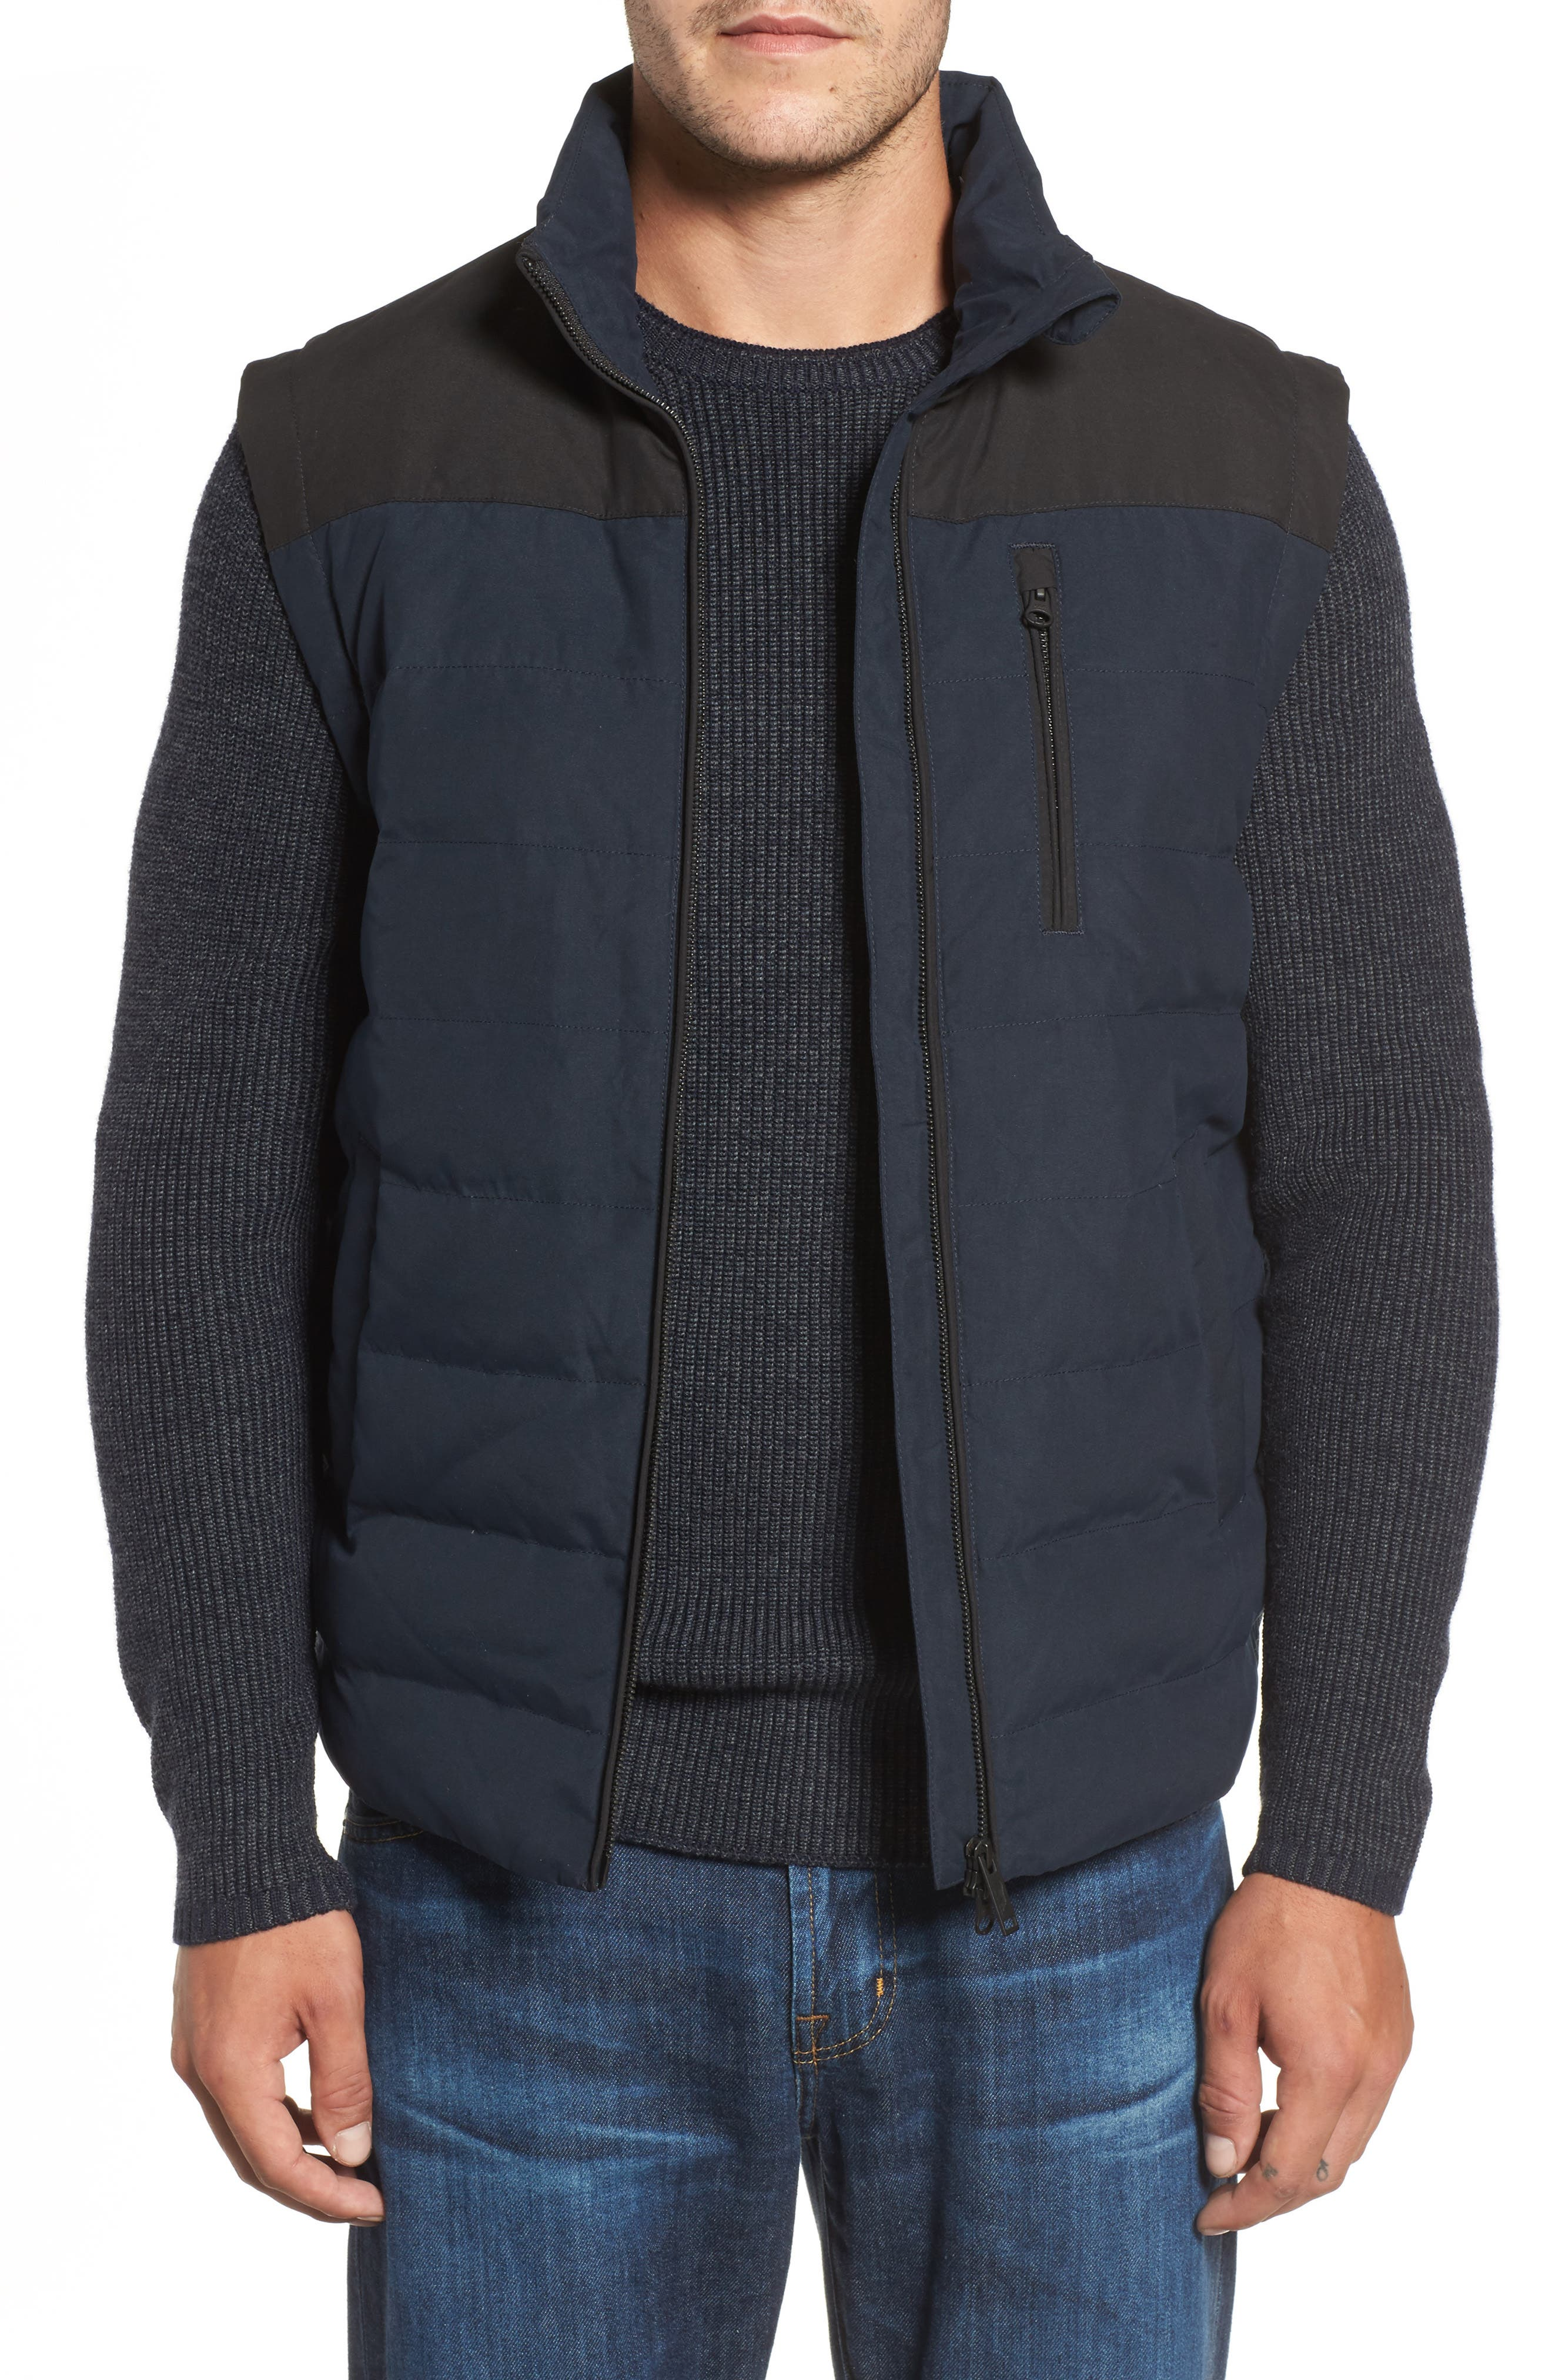 Stillwater Quilted Vest,                             Main thumbnail 1, color,                             Eclipse